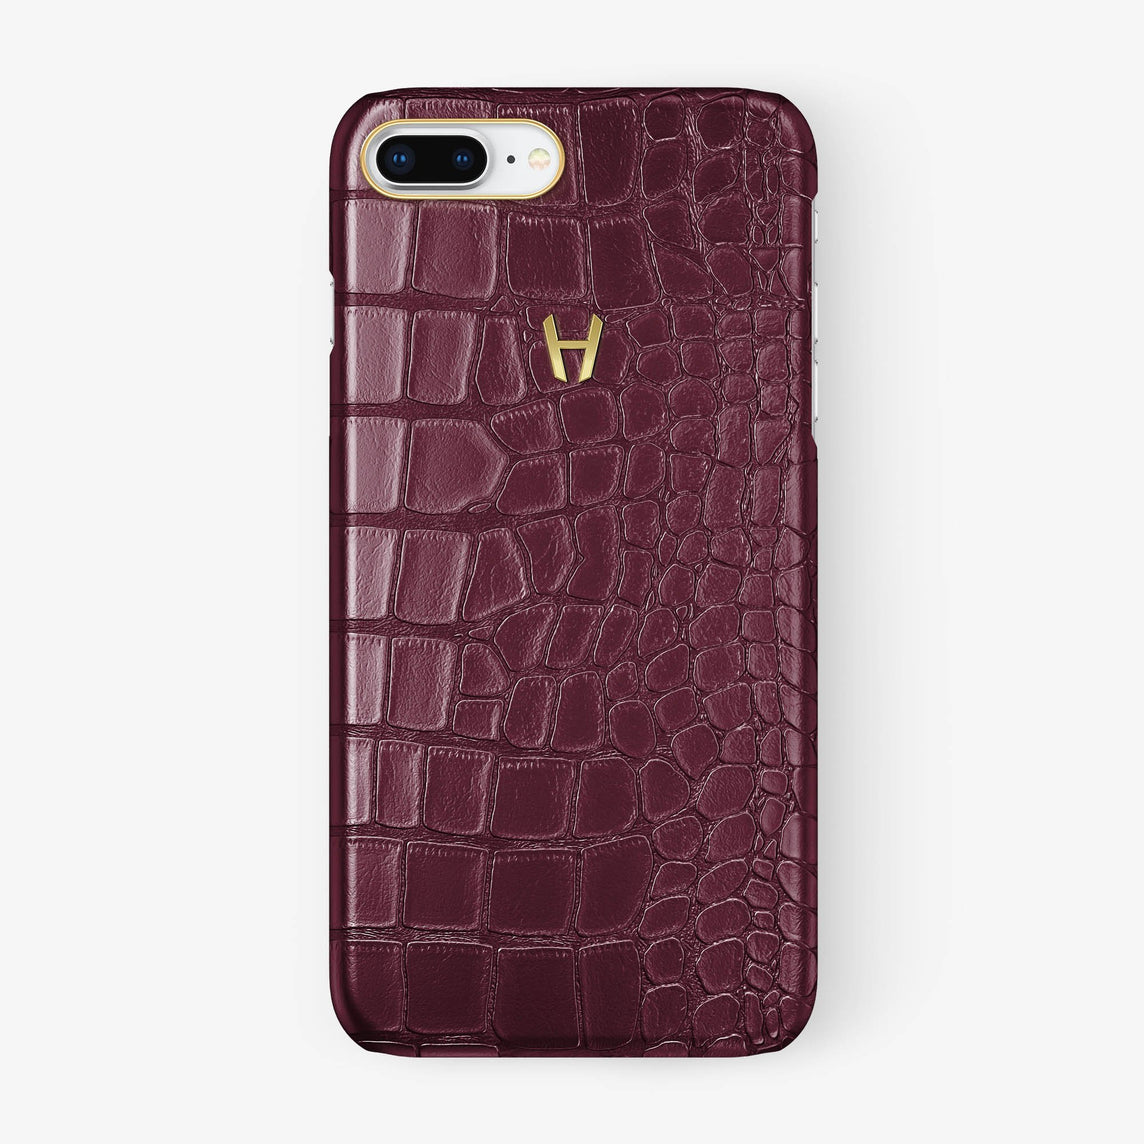 Alligator Case iPhone 7/8 Plus | Burgundy - Yellow Gold